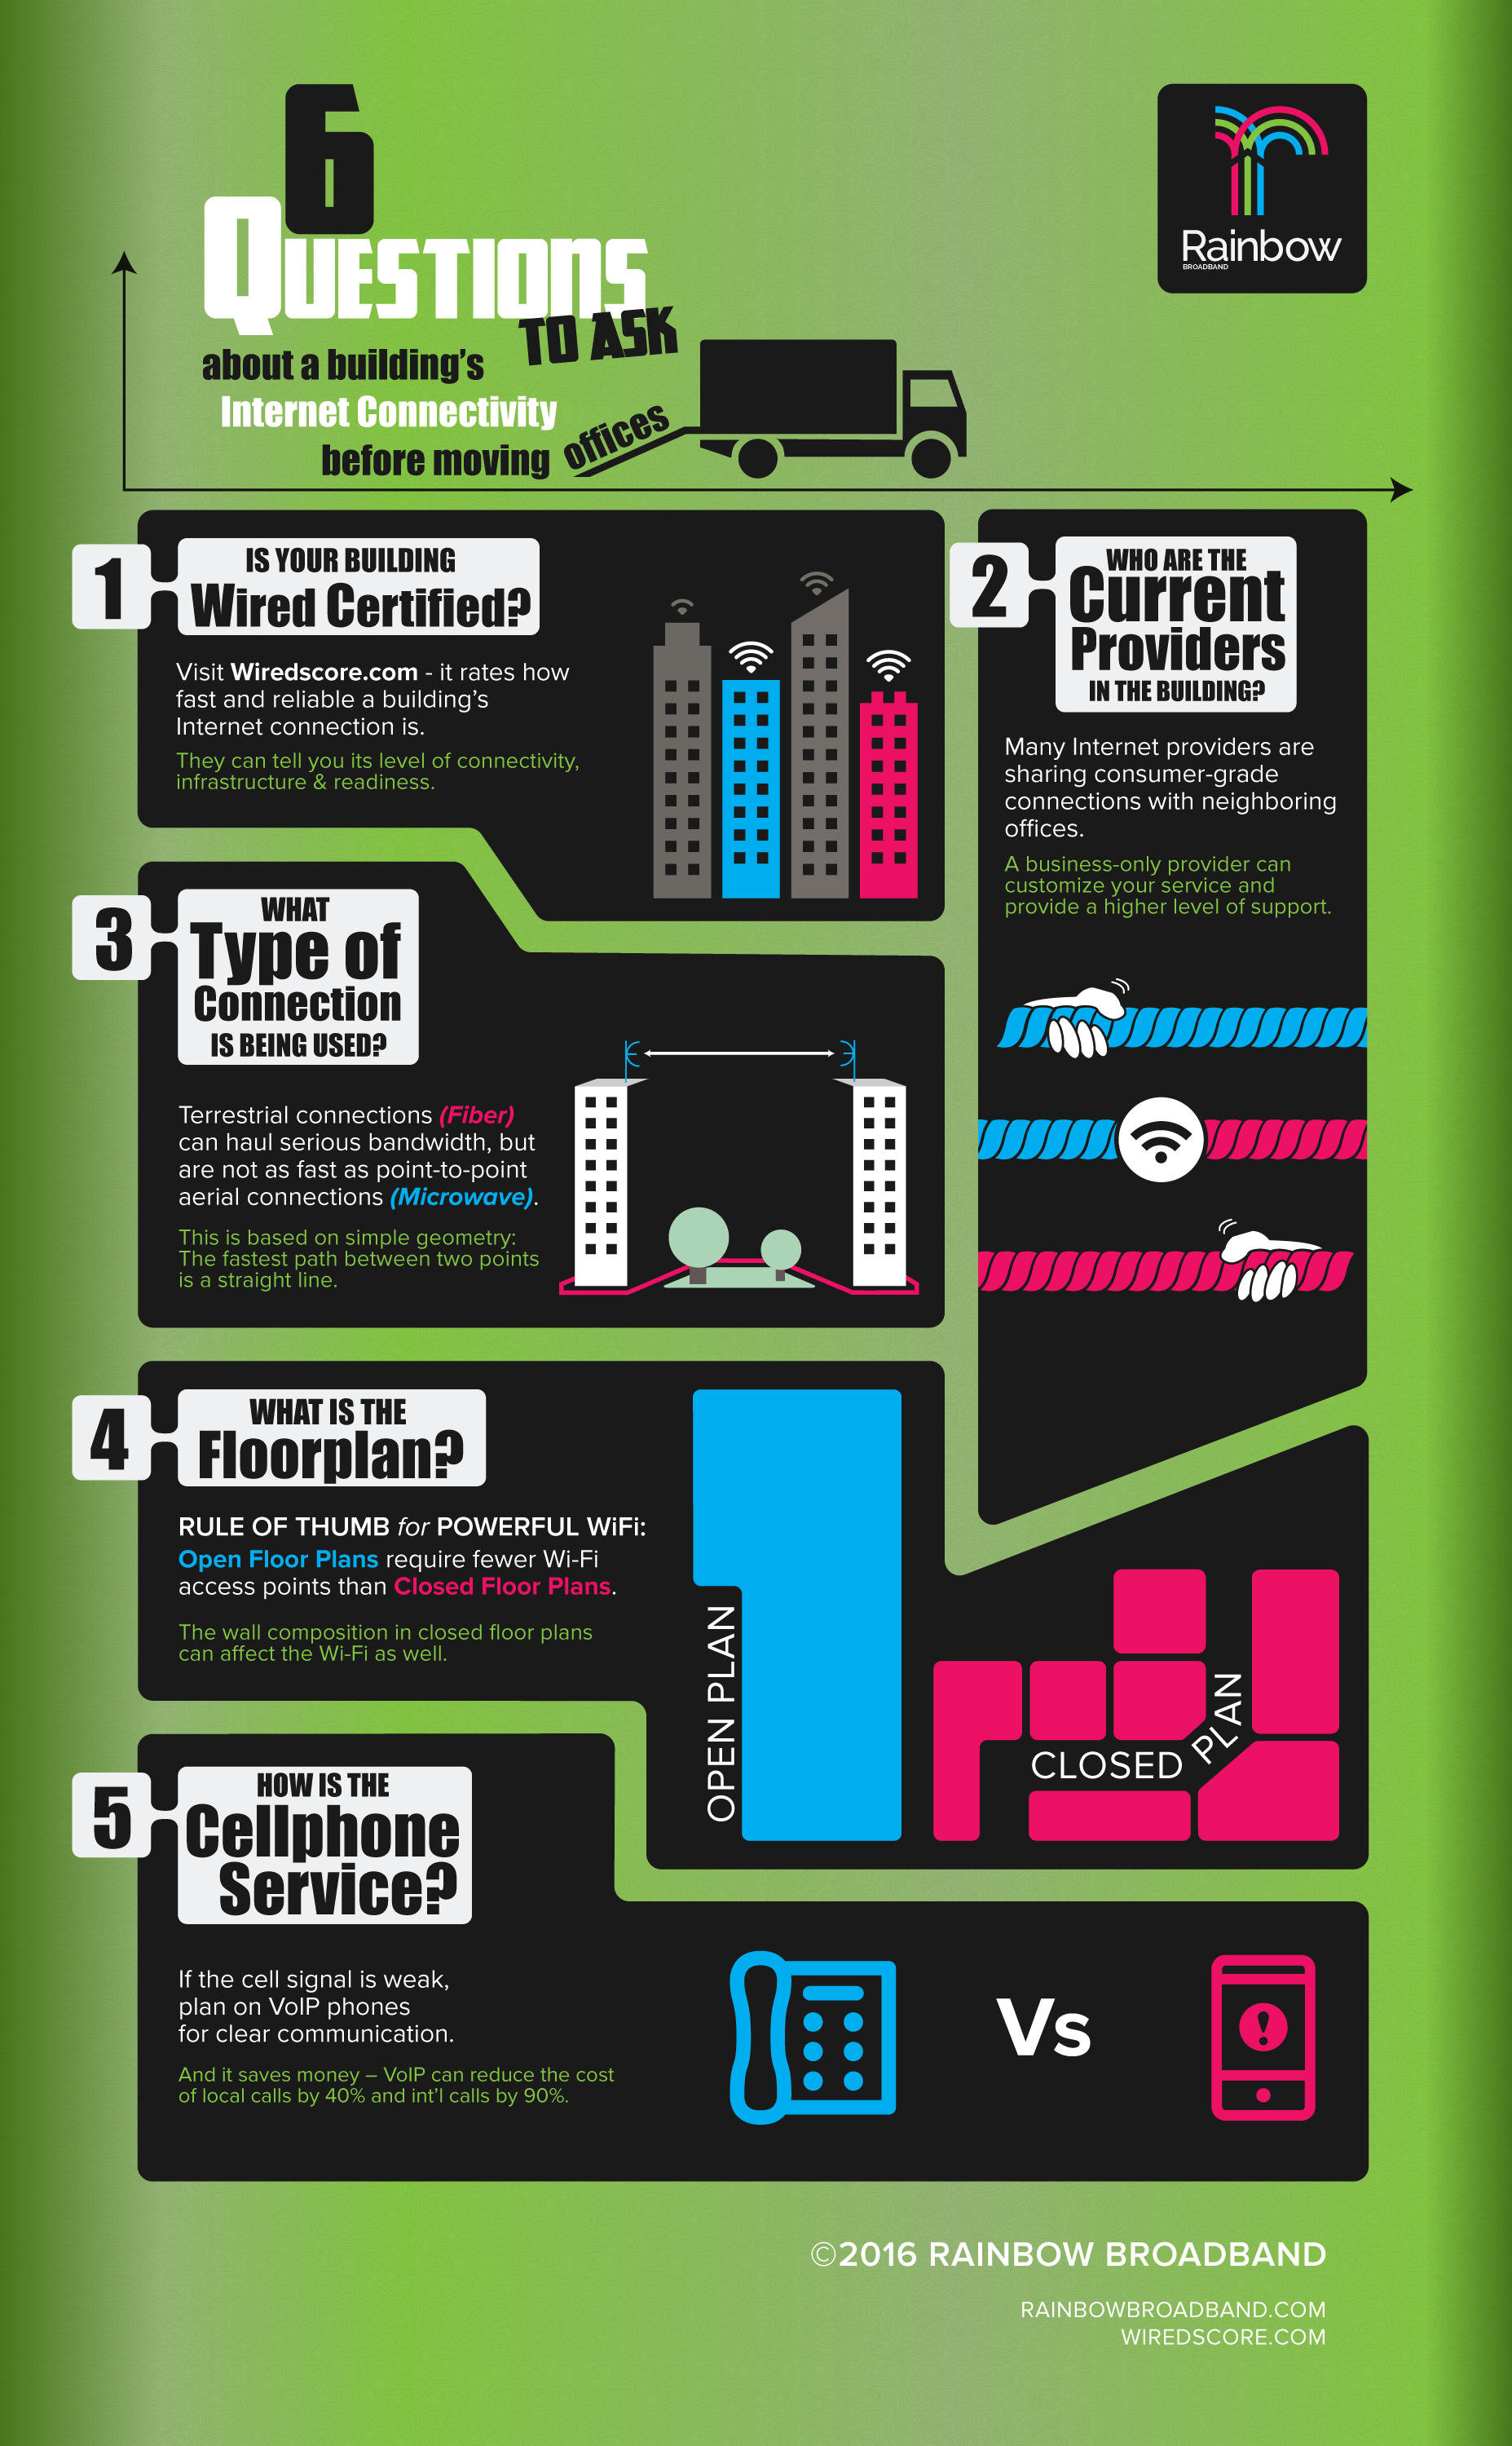 Infographic: 6 Questions to Ask About a Building's Internet Connectivity Before Moving Offices